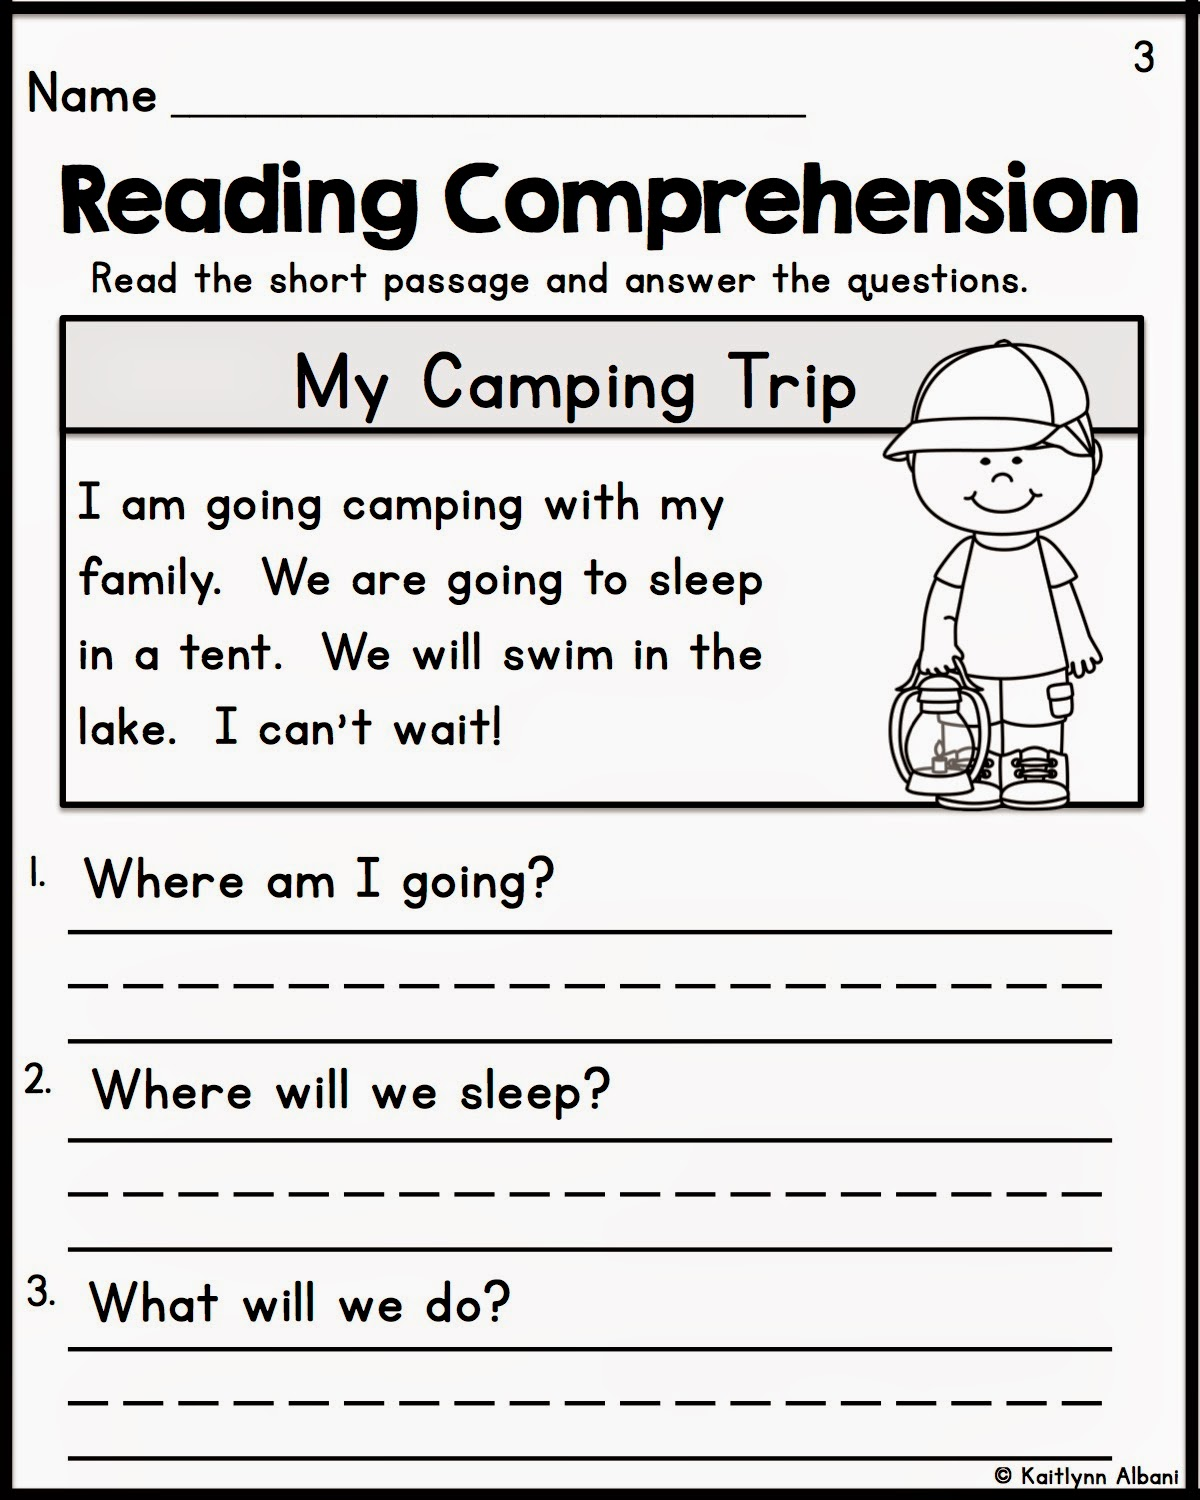 Worksheet Reading Comprehension Passages For Kindergarten kindergarten reading comprehension questions scalien the best of teacher entrepreneurs ii worksheets